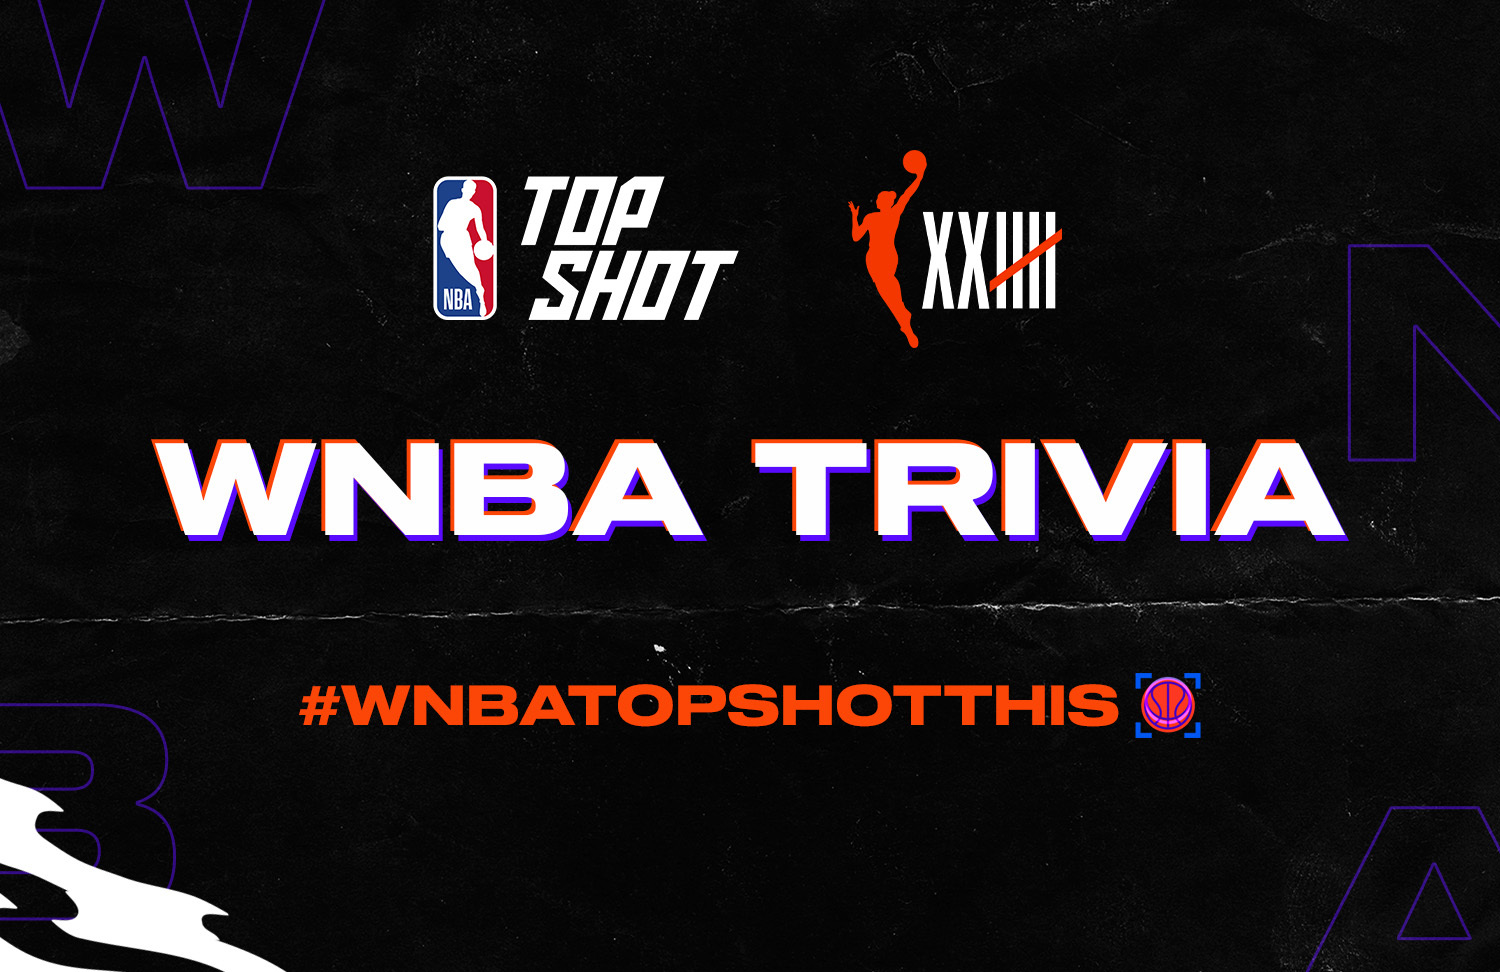 We celebrated the launch of WNBA on Top Shot with a Trivia Night.